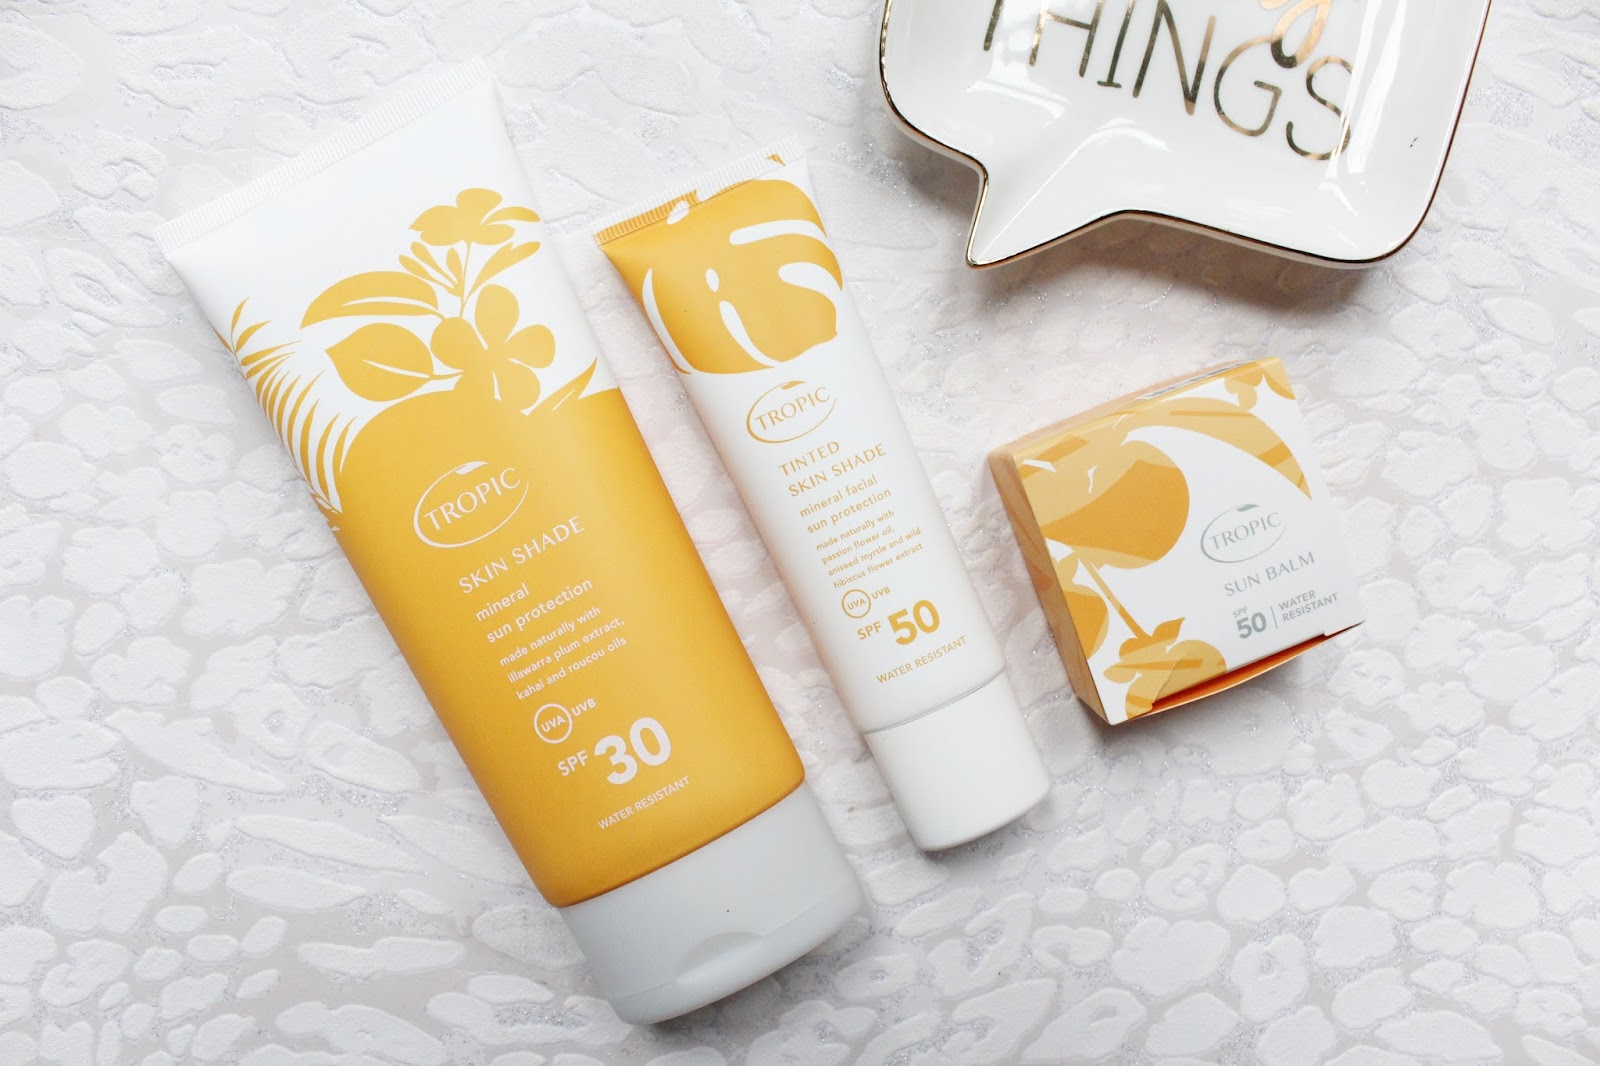 Tropic Mineral Sun Protection